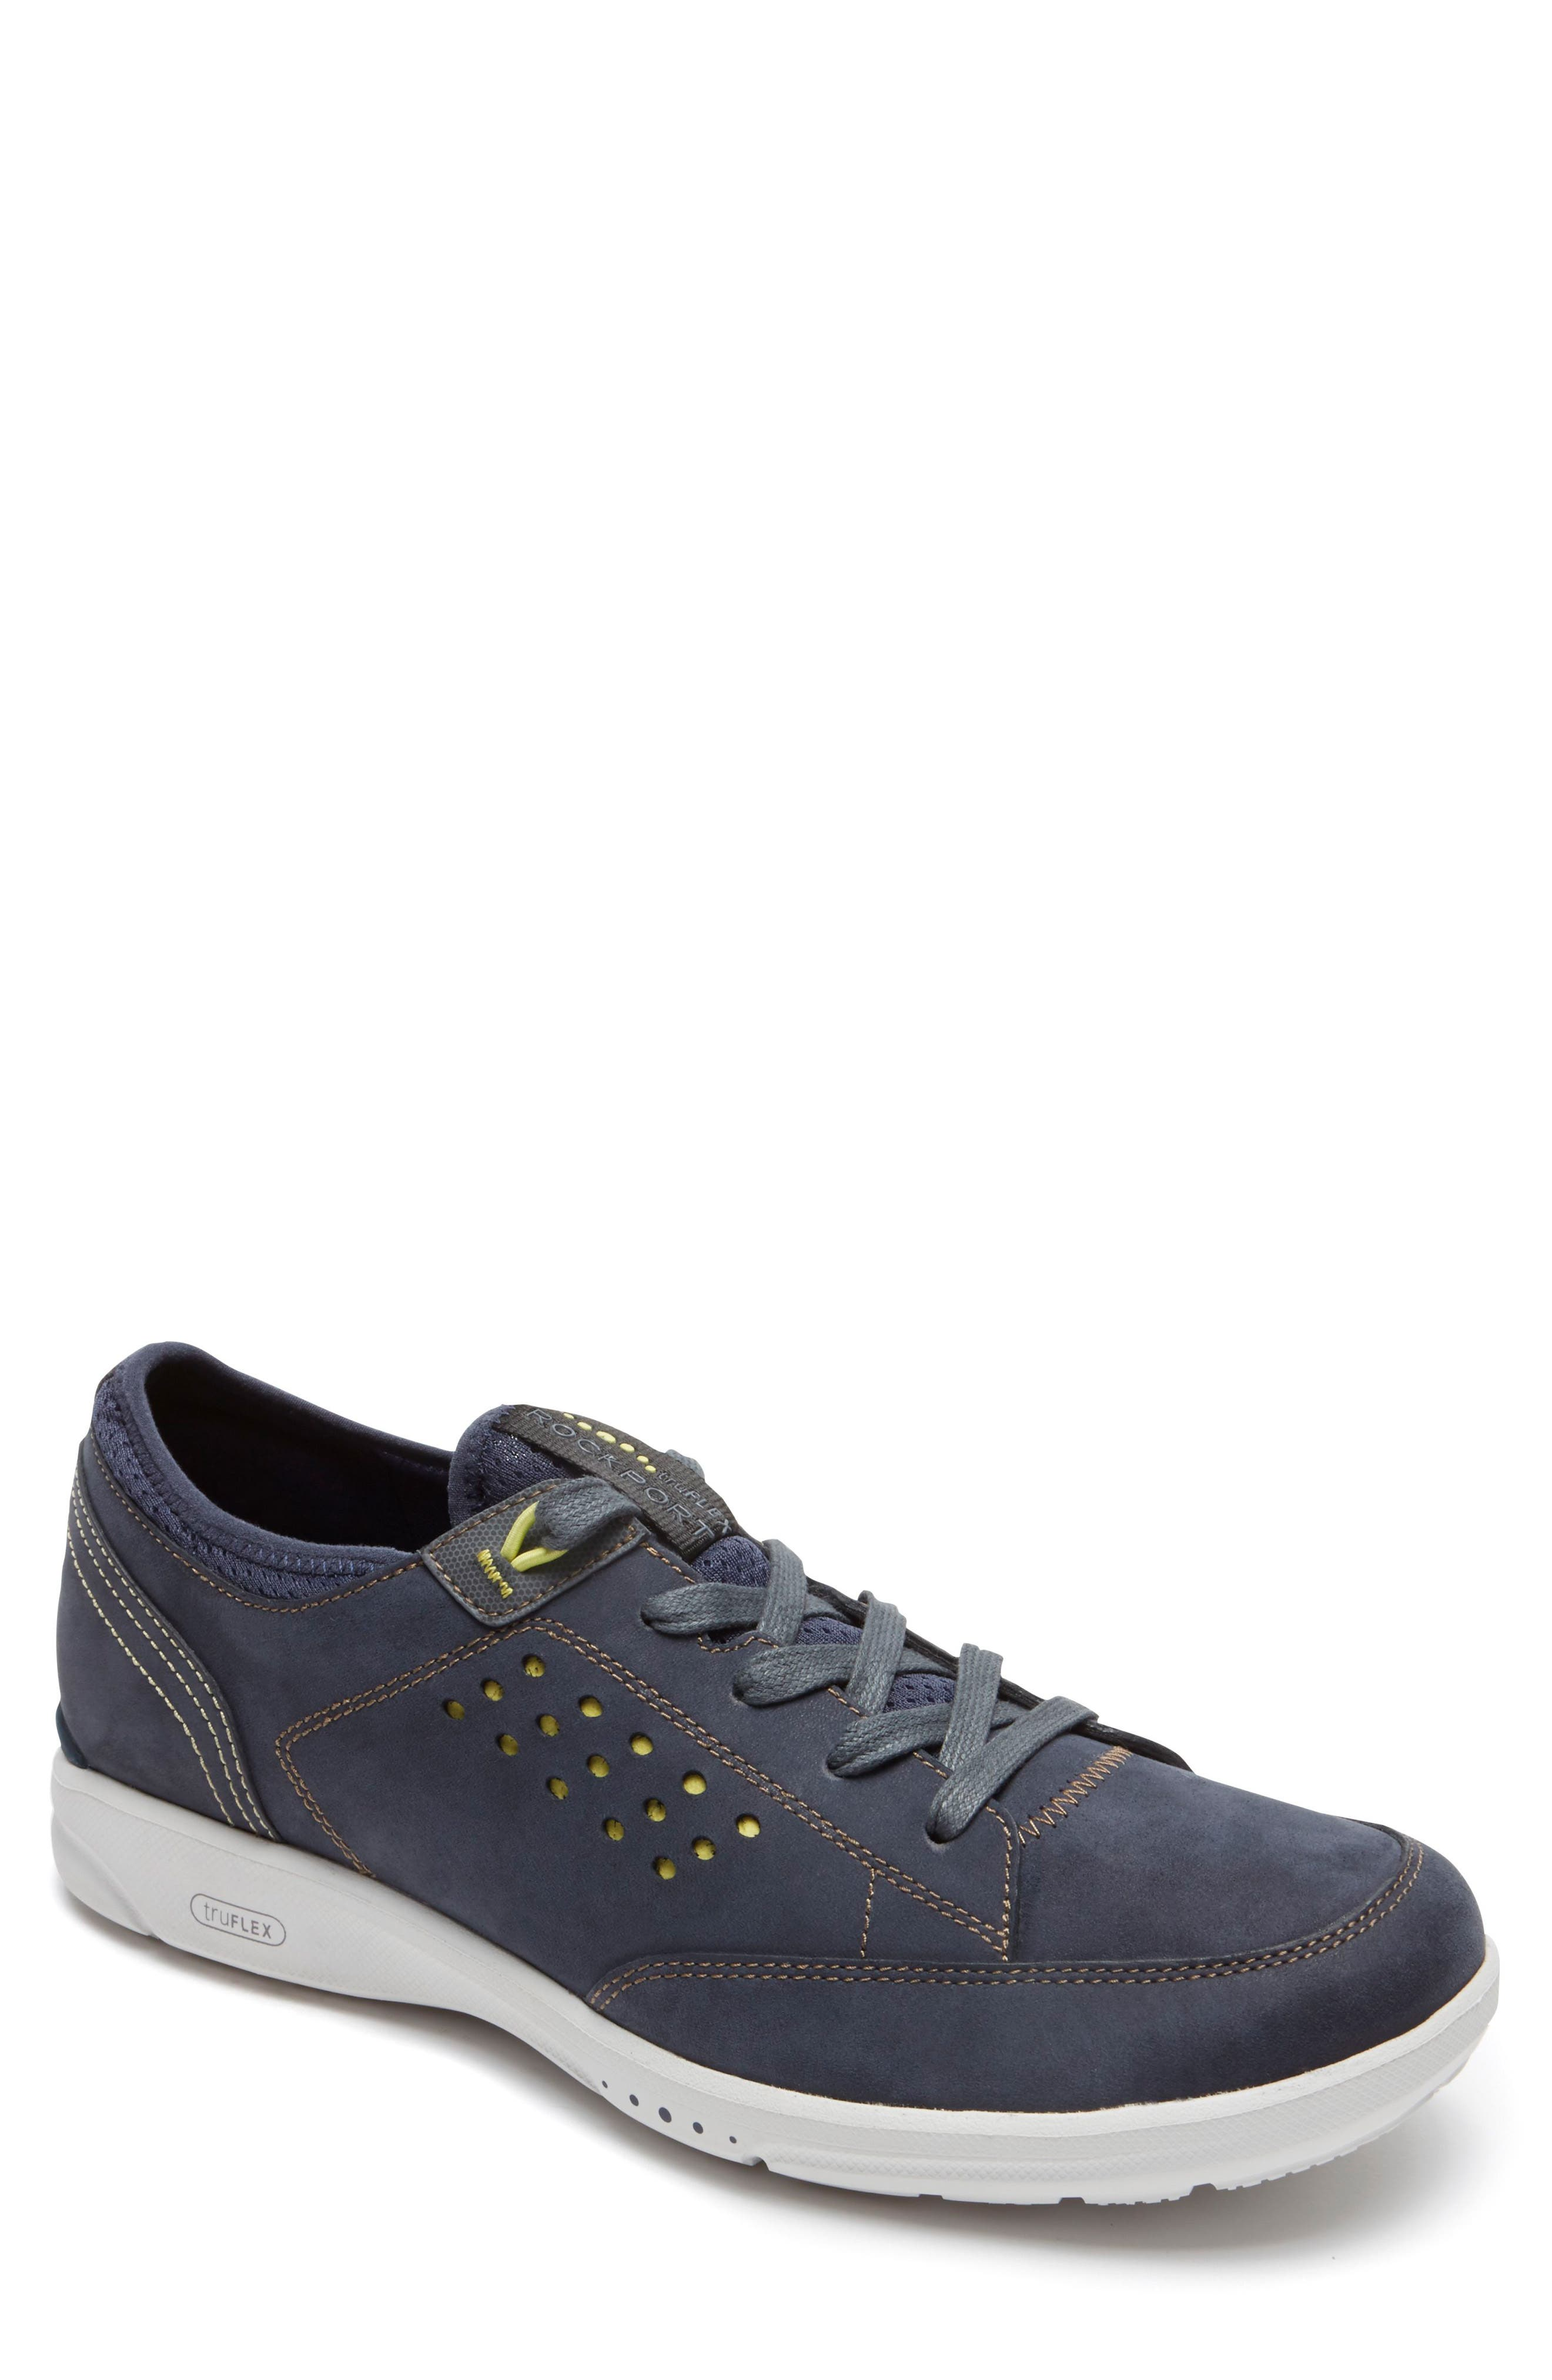 Truflex Sneaker,                             Main thumbnail 1, color,                             NEW DRESS BLUES NUBUCK